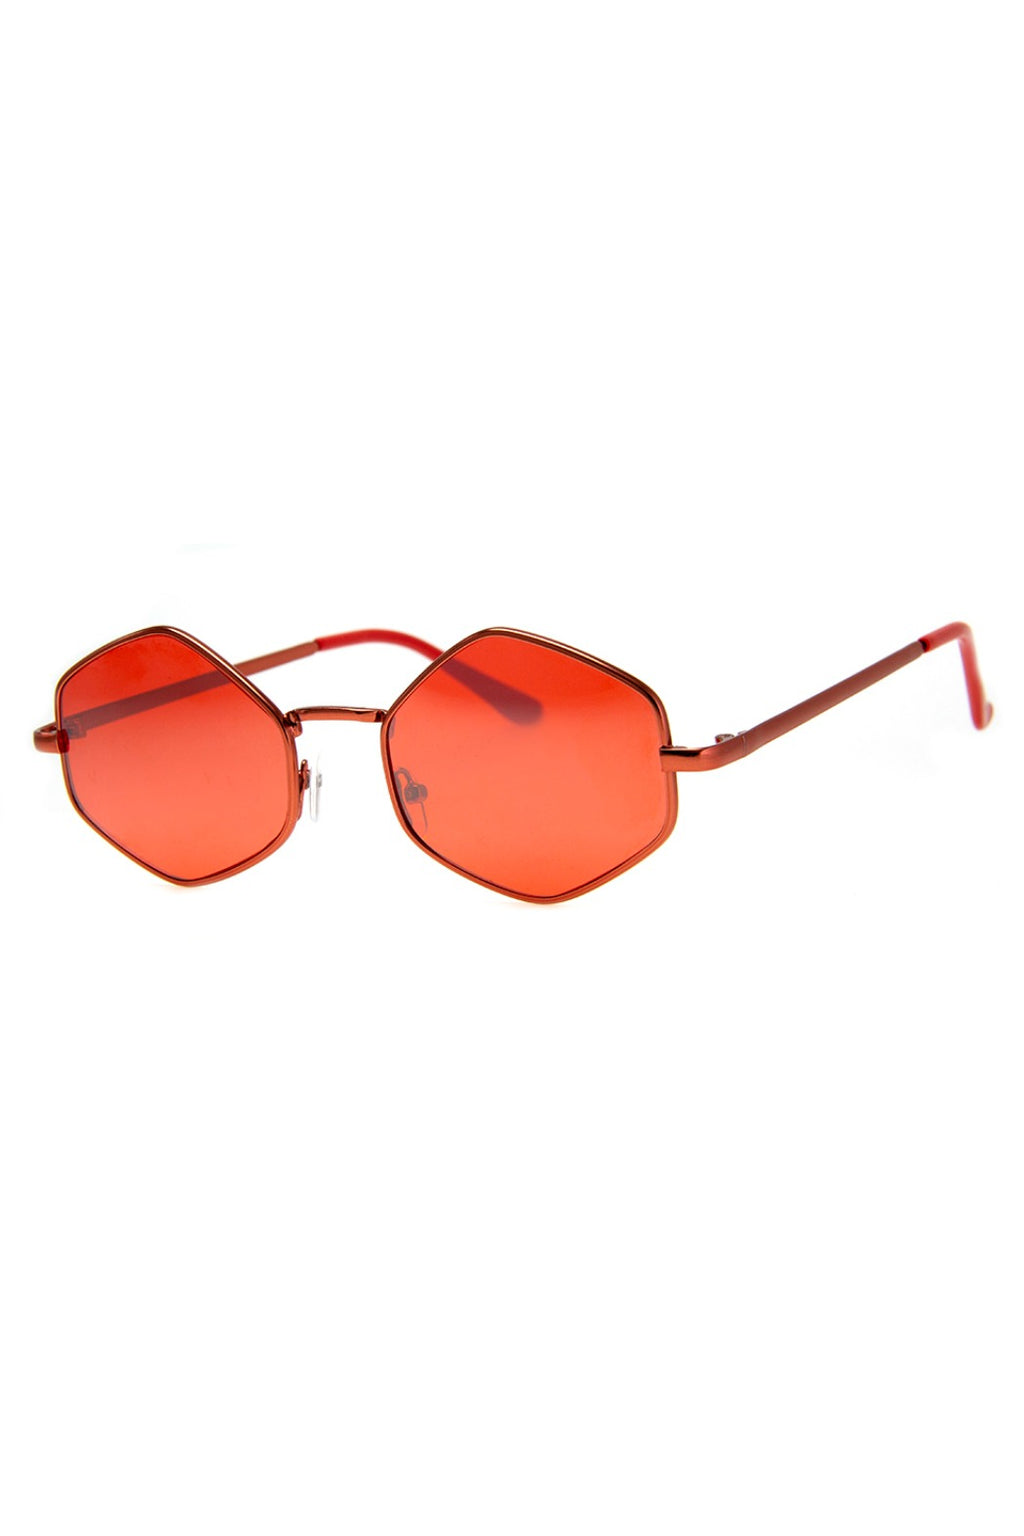 Lit Sunnies - Matte Red